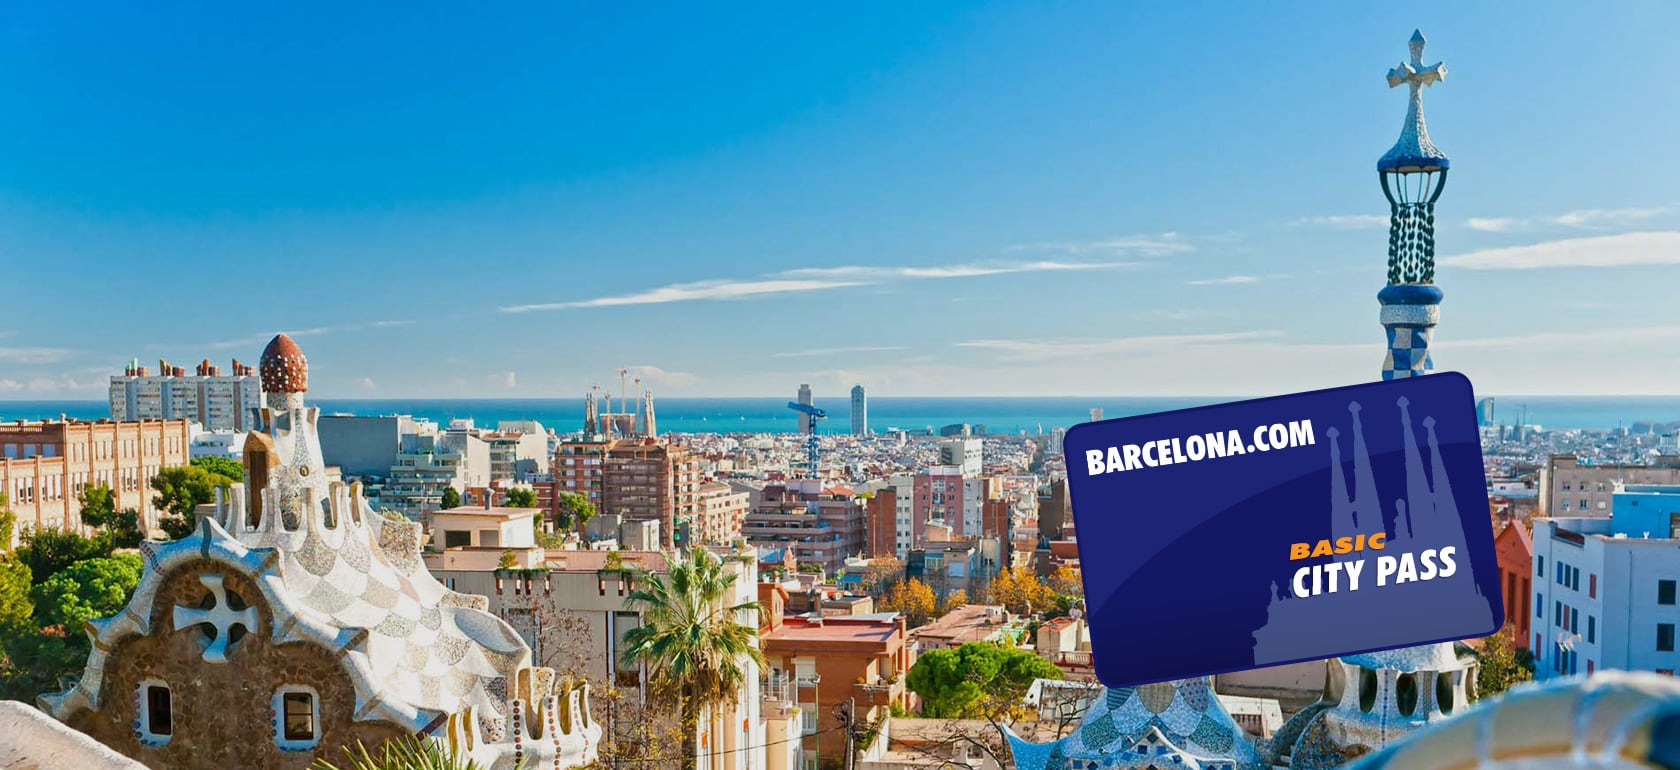 Barcelona City Pass - Basic